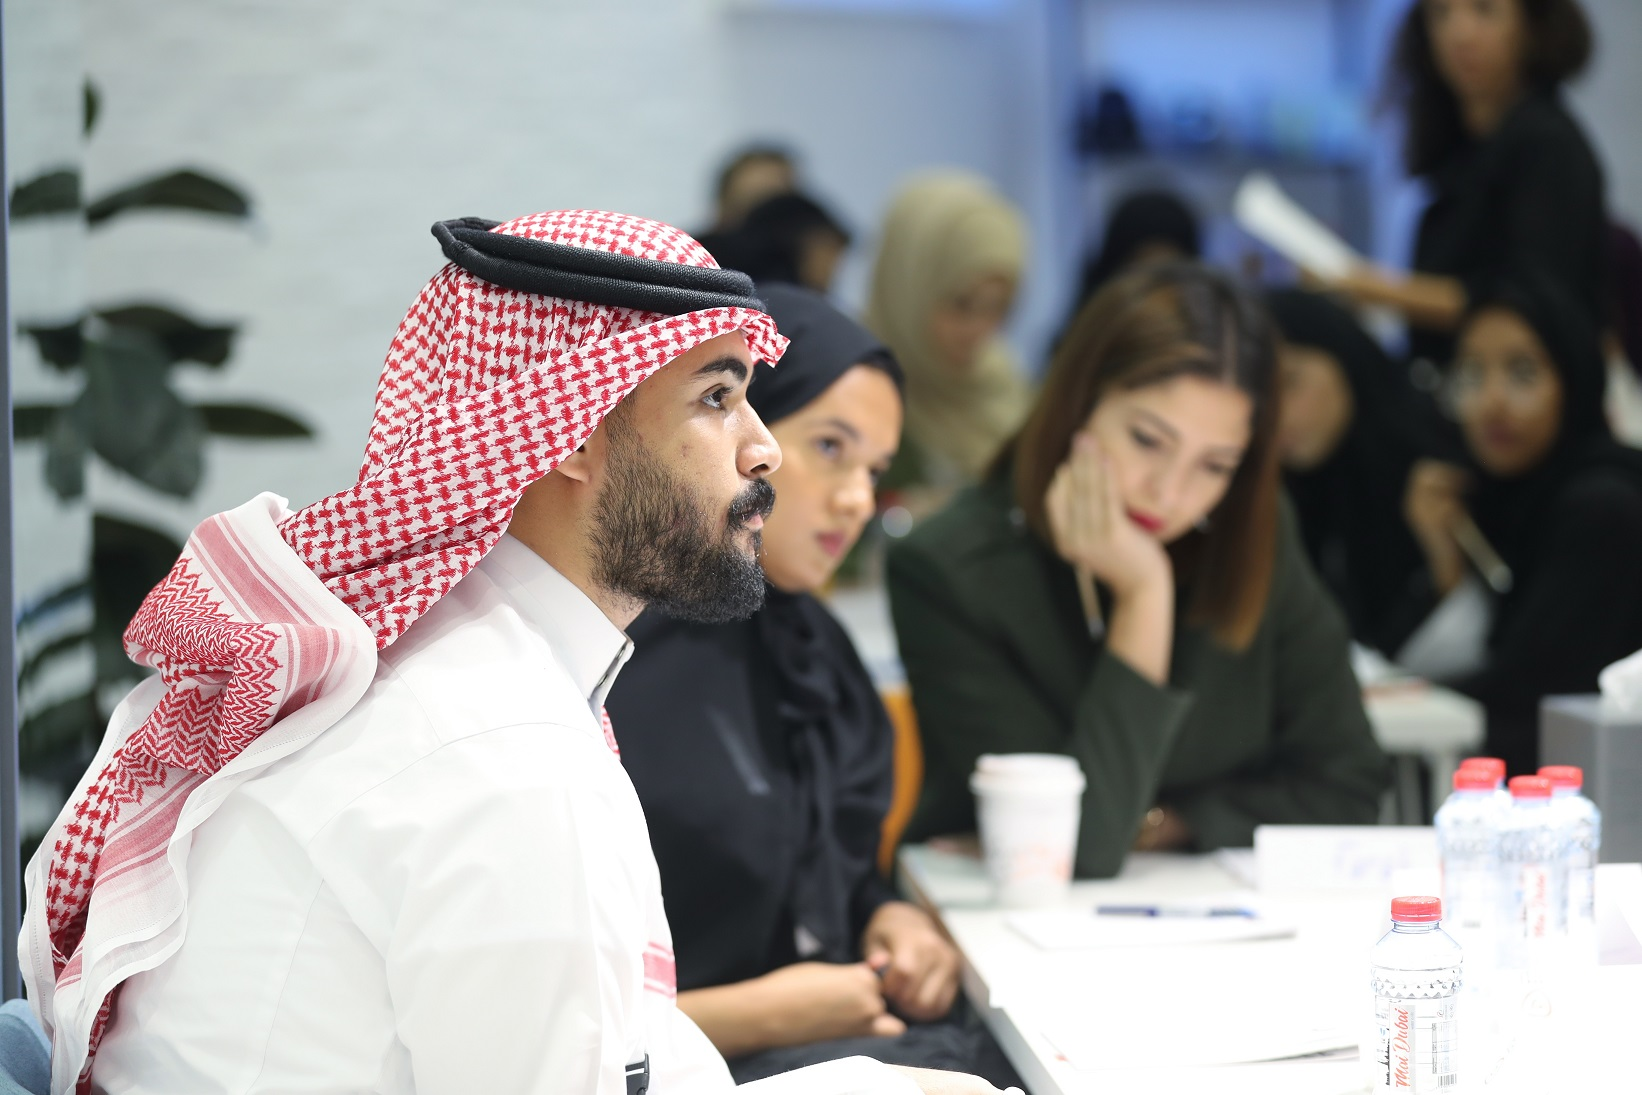 One Hundred Young Men and Women From 15 Arab Countries Take Part in 2nd Edition of 'Young Arab Media Leaders' Programme